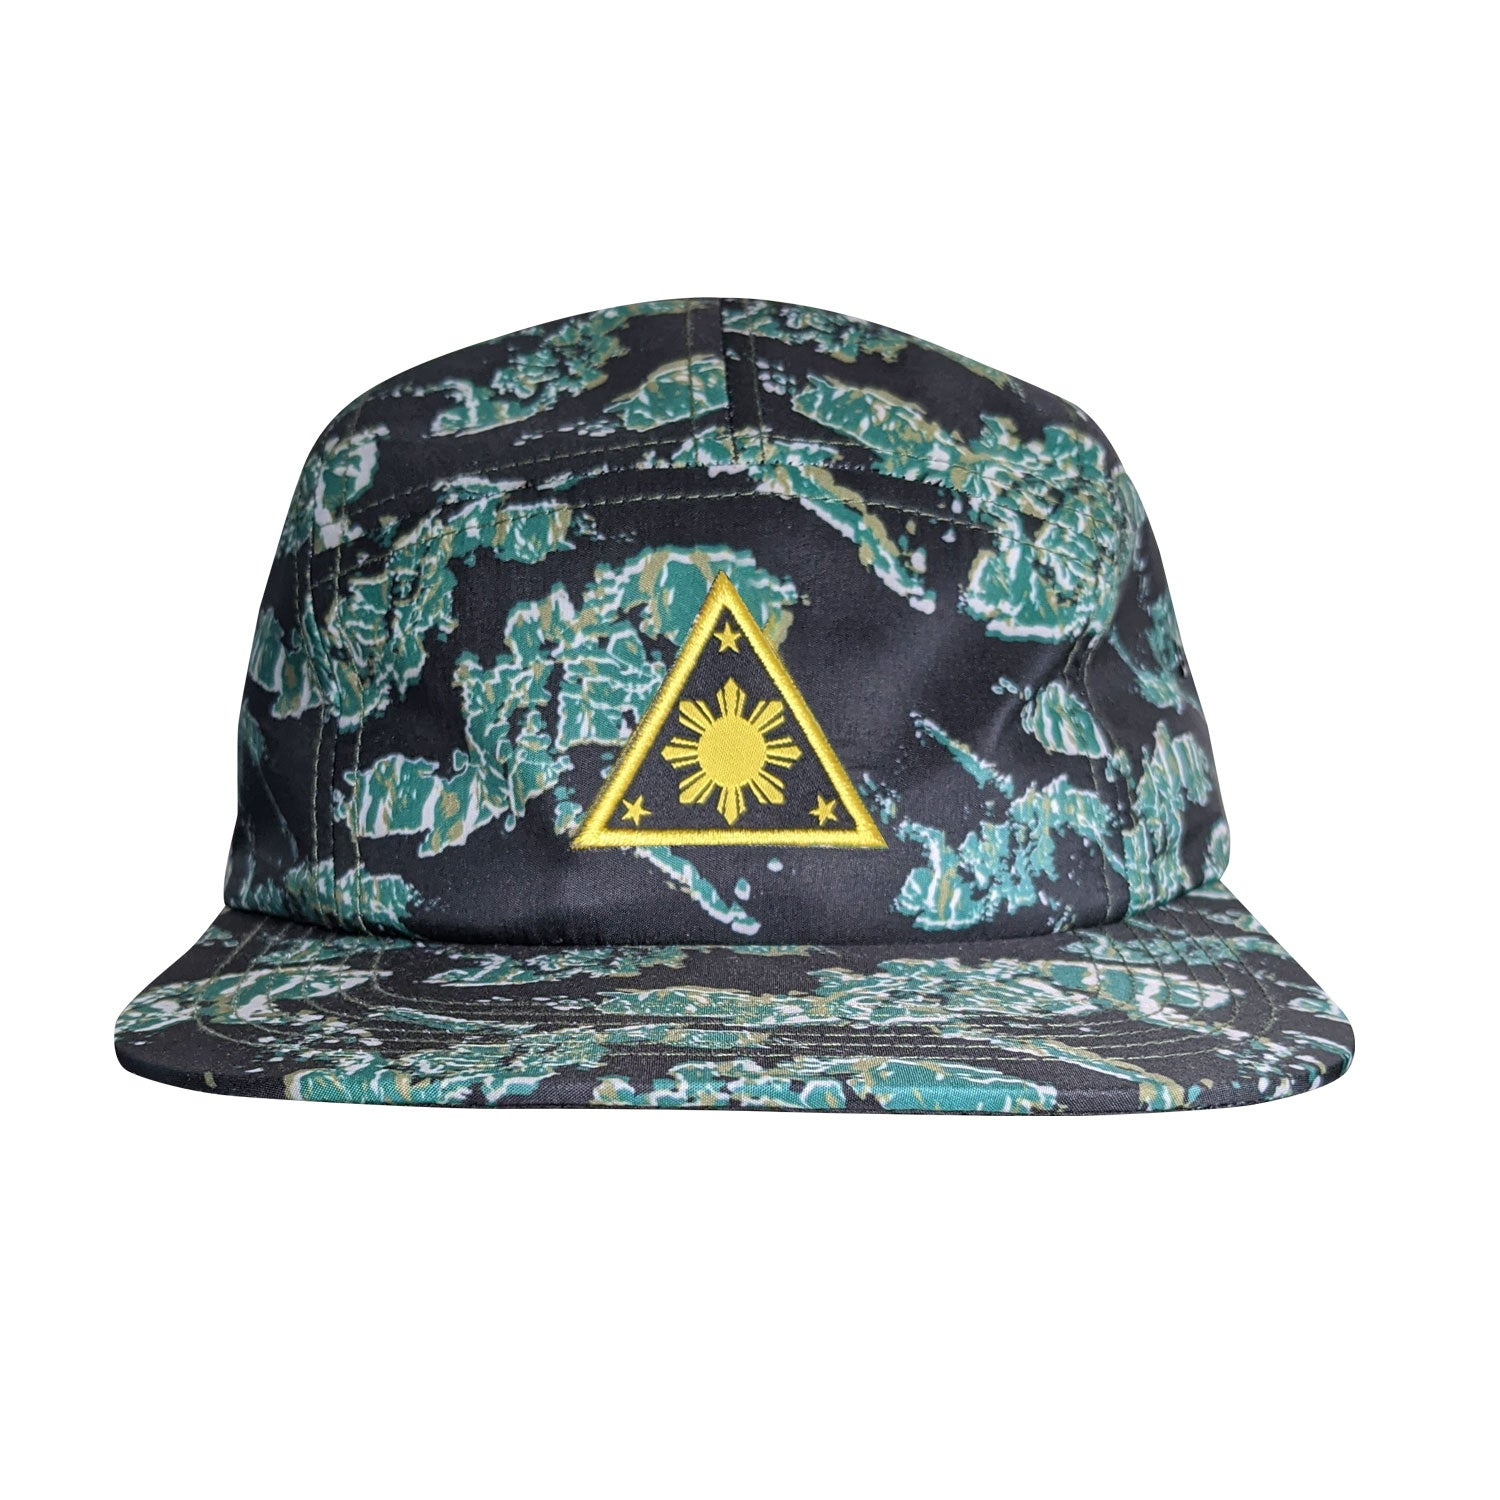 Triangle Sun 5 Panel Strapback Hat - Philippine Island Tiger Camo